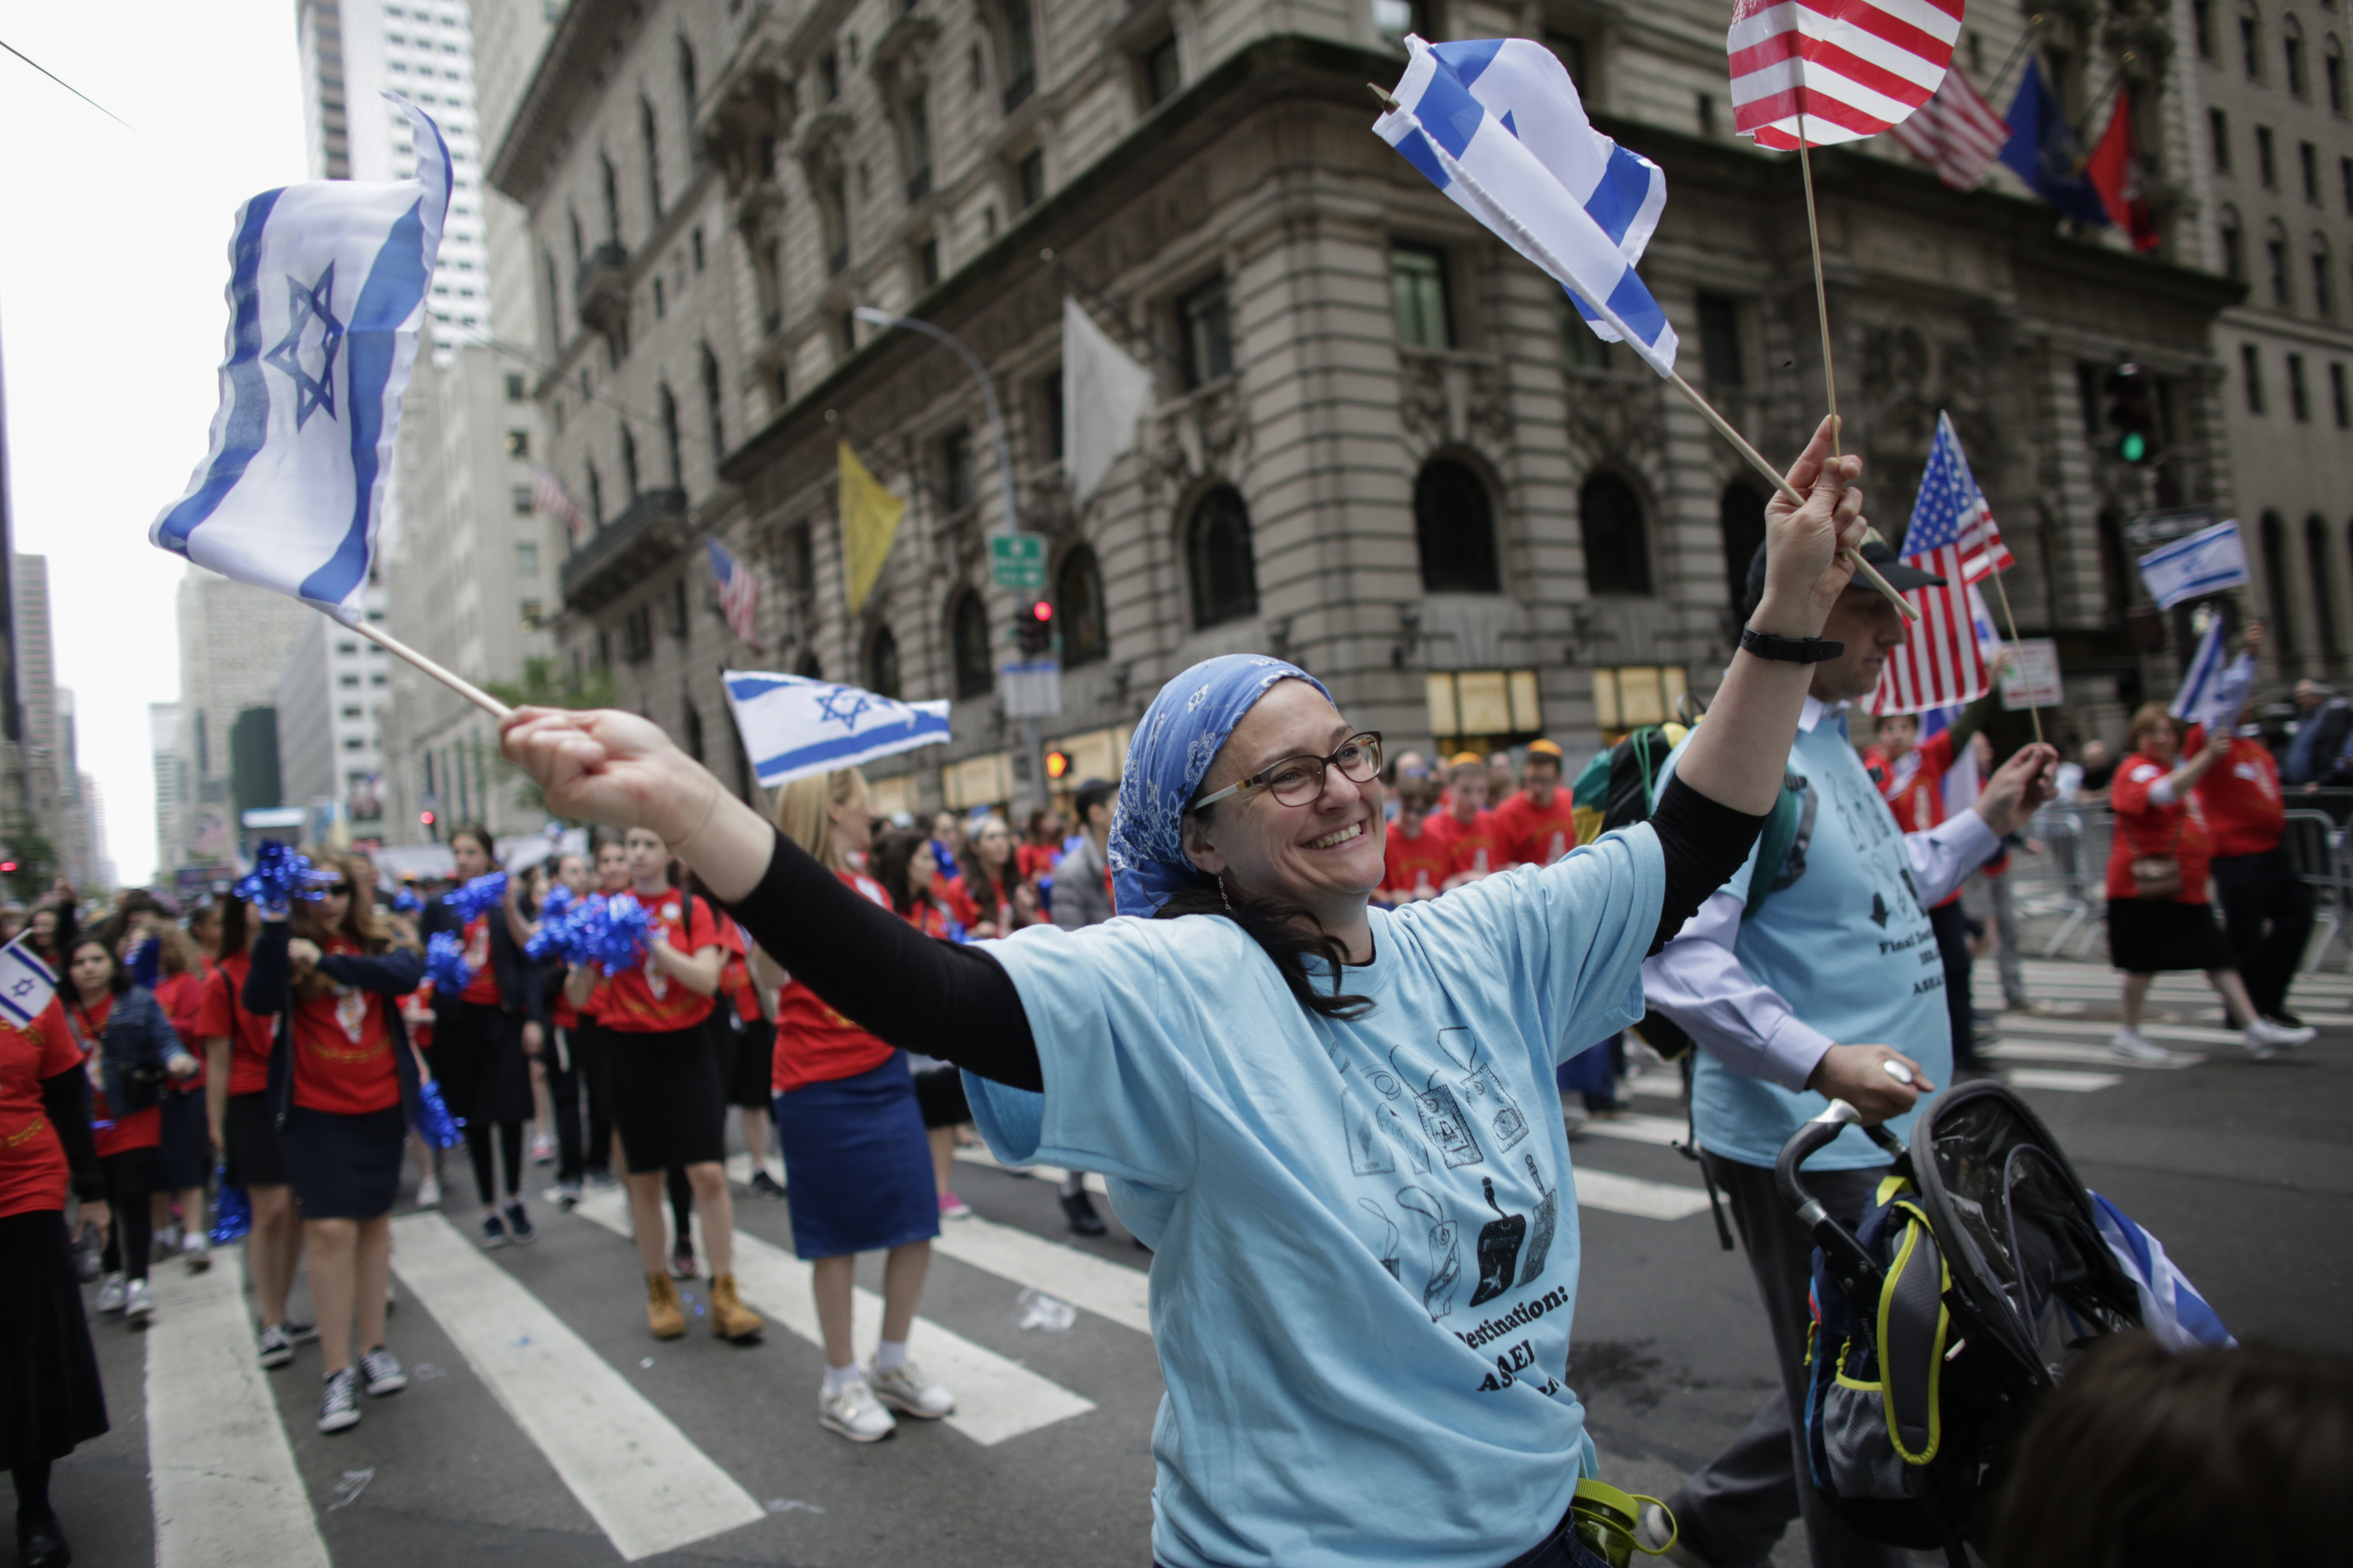 NEW YORK, NY - People march the annual Celebrate Israel Parade on June 3, 2018 in New York City.  (Kena Betancur/Getty Images/AFP)